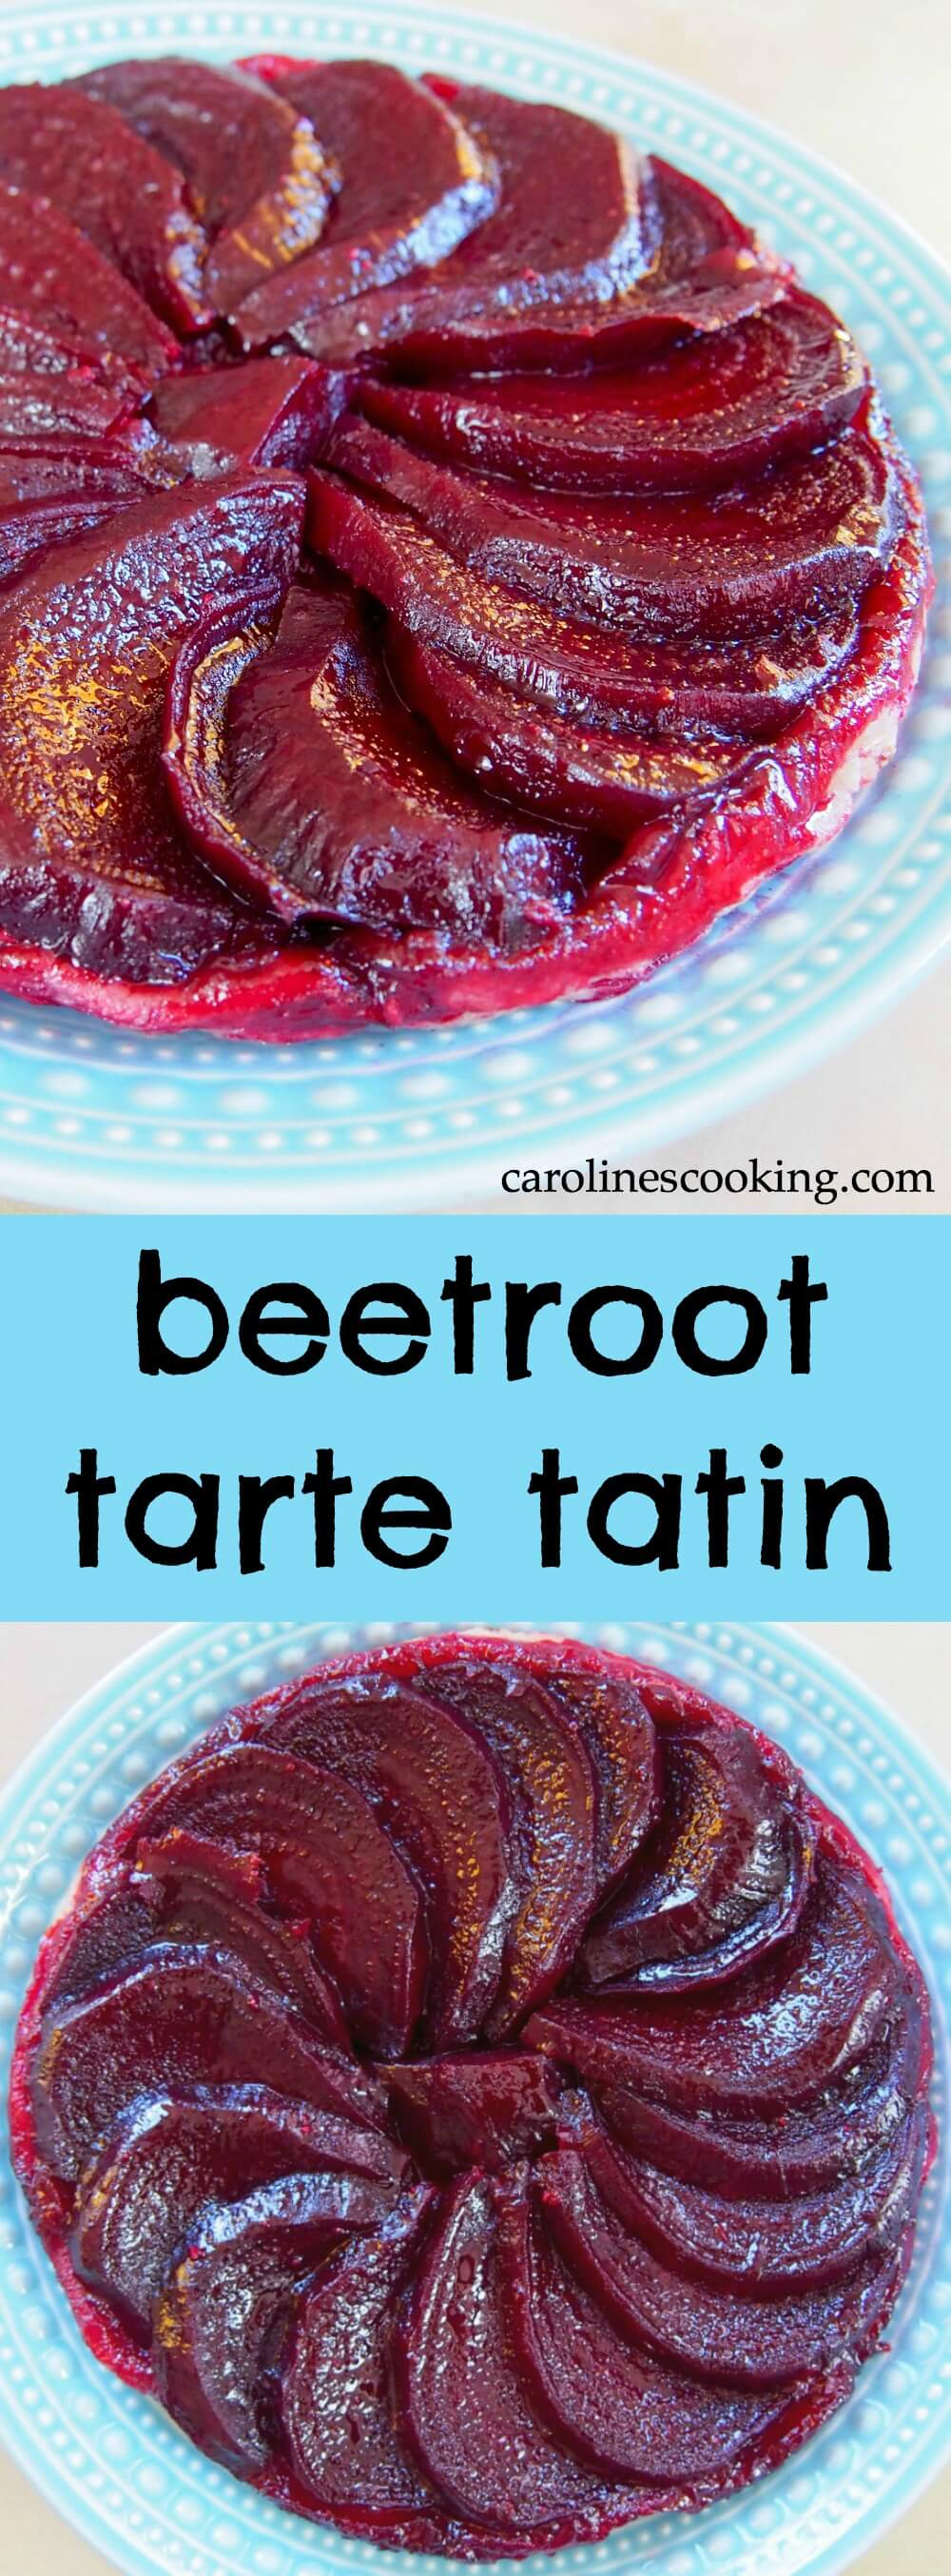 Beetroot tarte tatin (beet tarte tatin) makes an easy, tasty lunch or light meal. With a little goats cheese, the beets become slightly caramelized, the pastry crisp and the flavors are delicate & delicious.